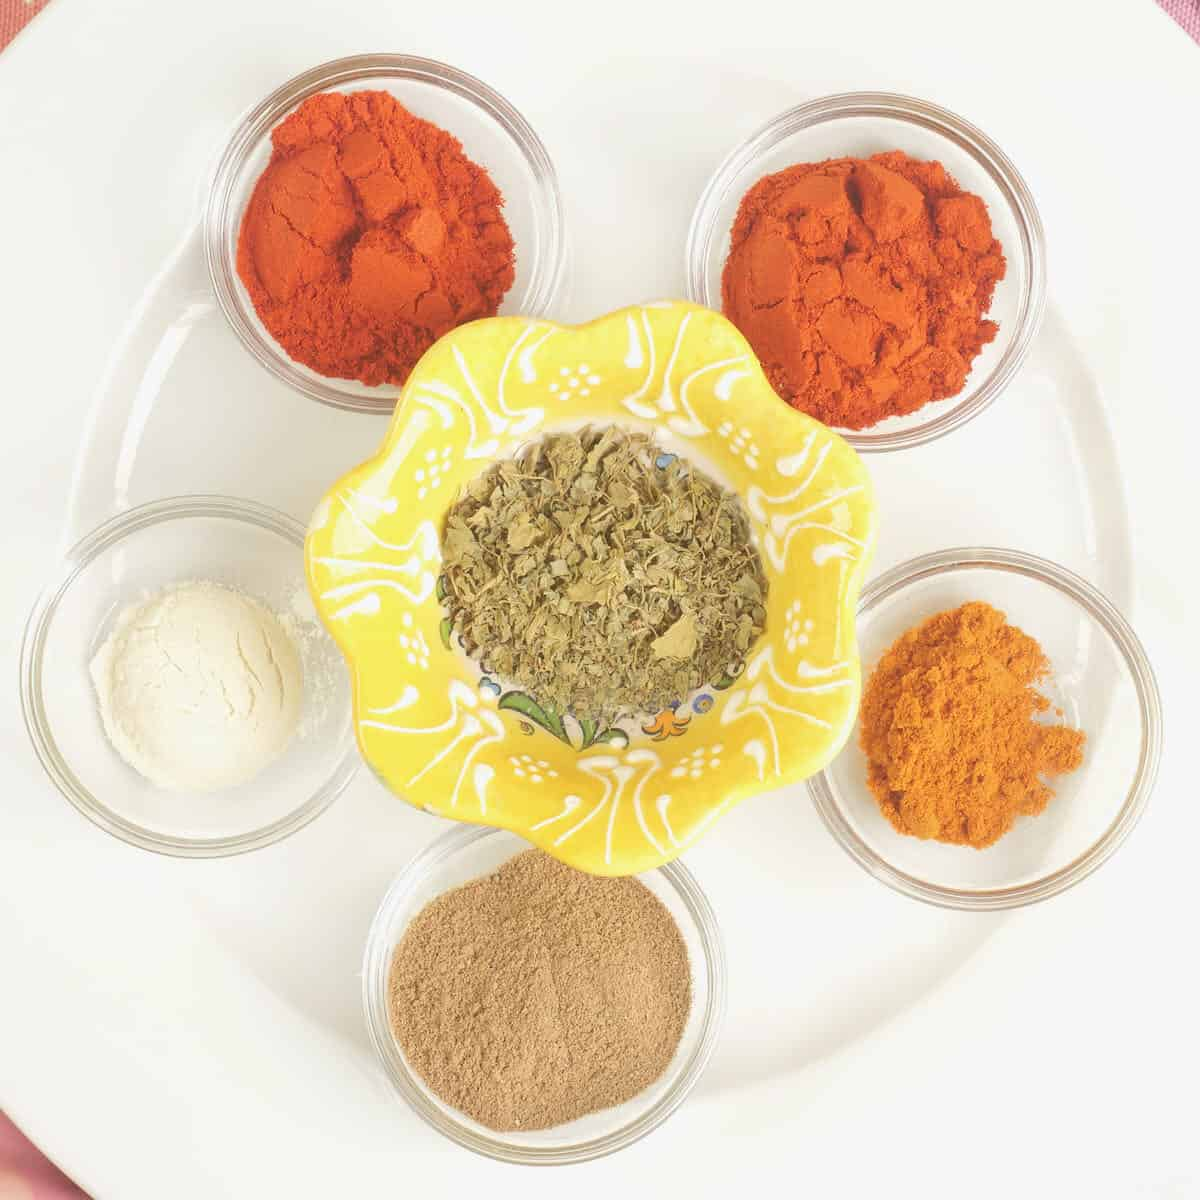 The ground spices used in the tandoori masala powder.